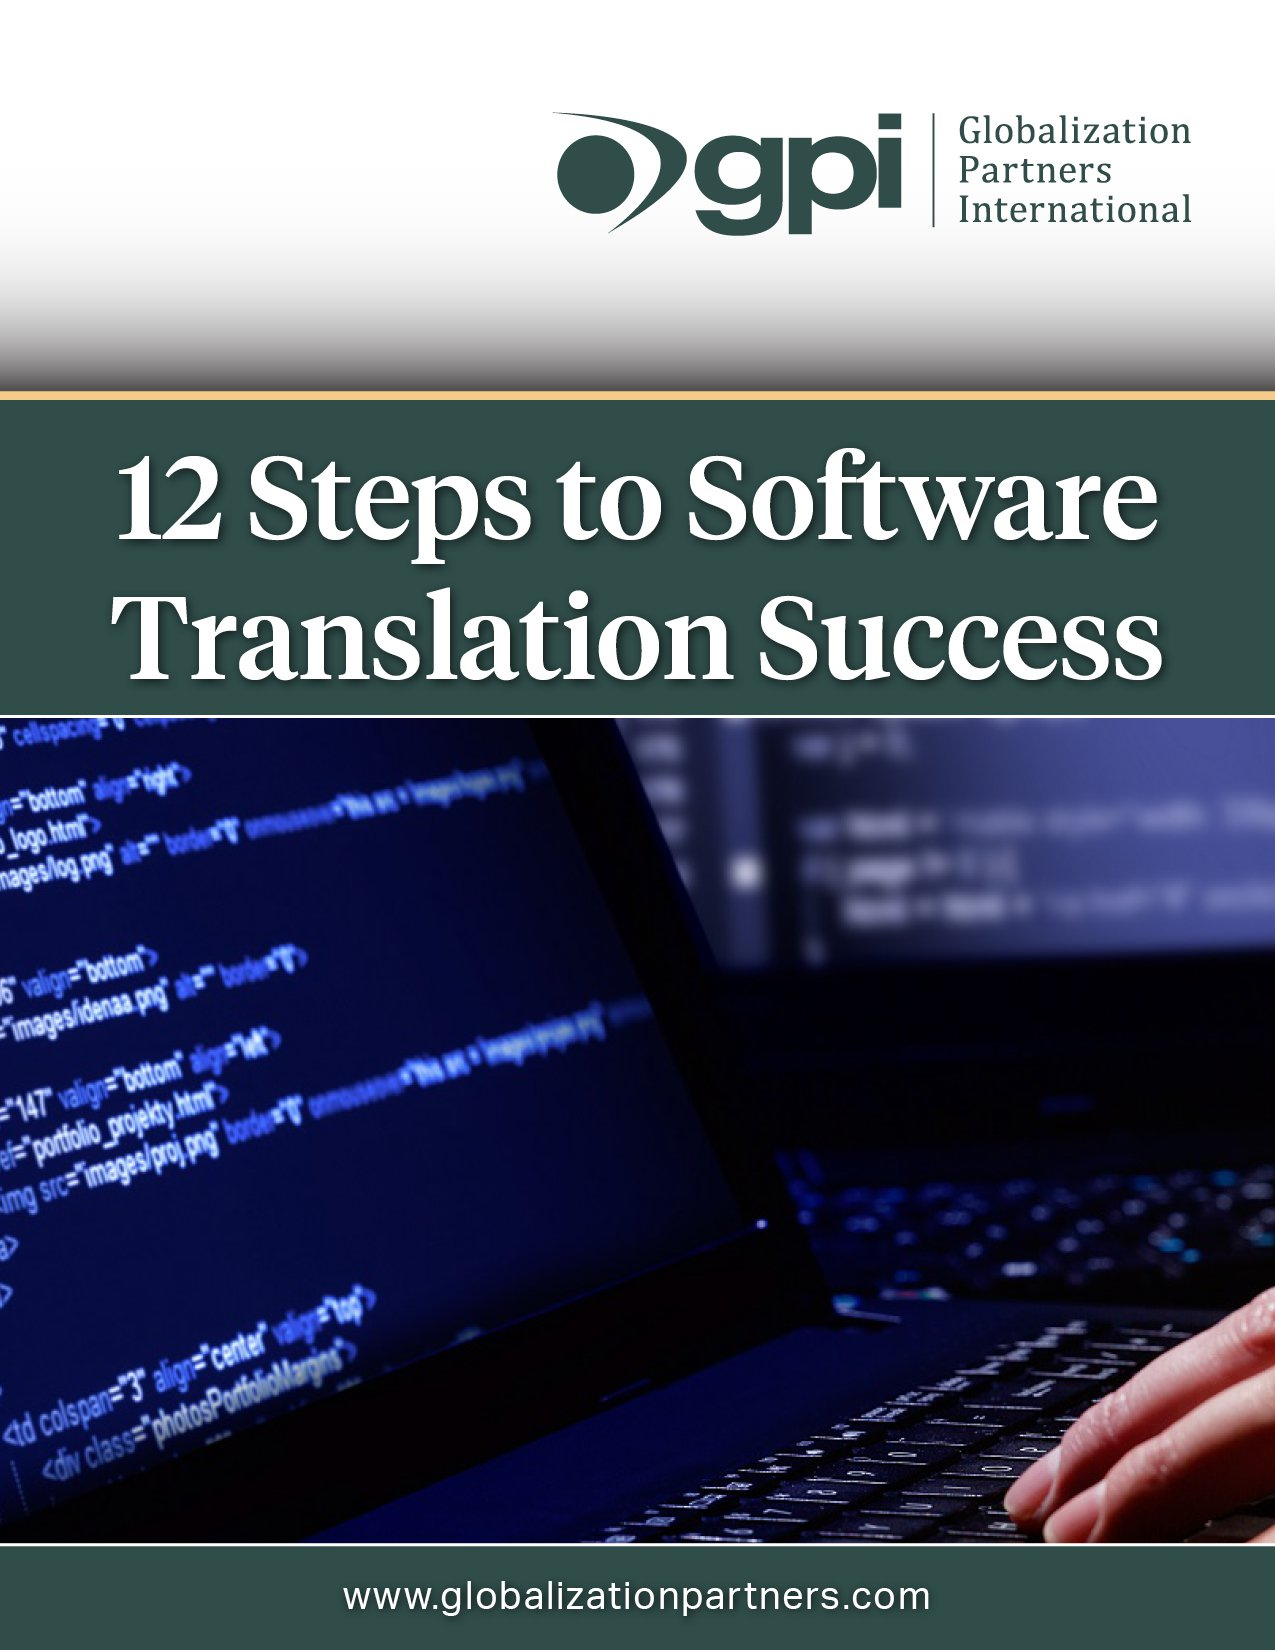 12 Steps to Software Translation Success Guidebook